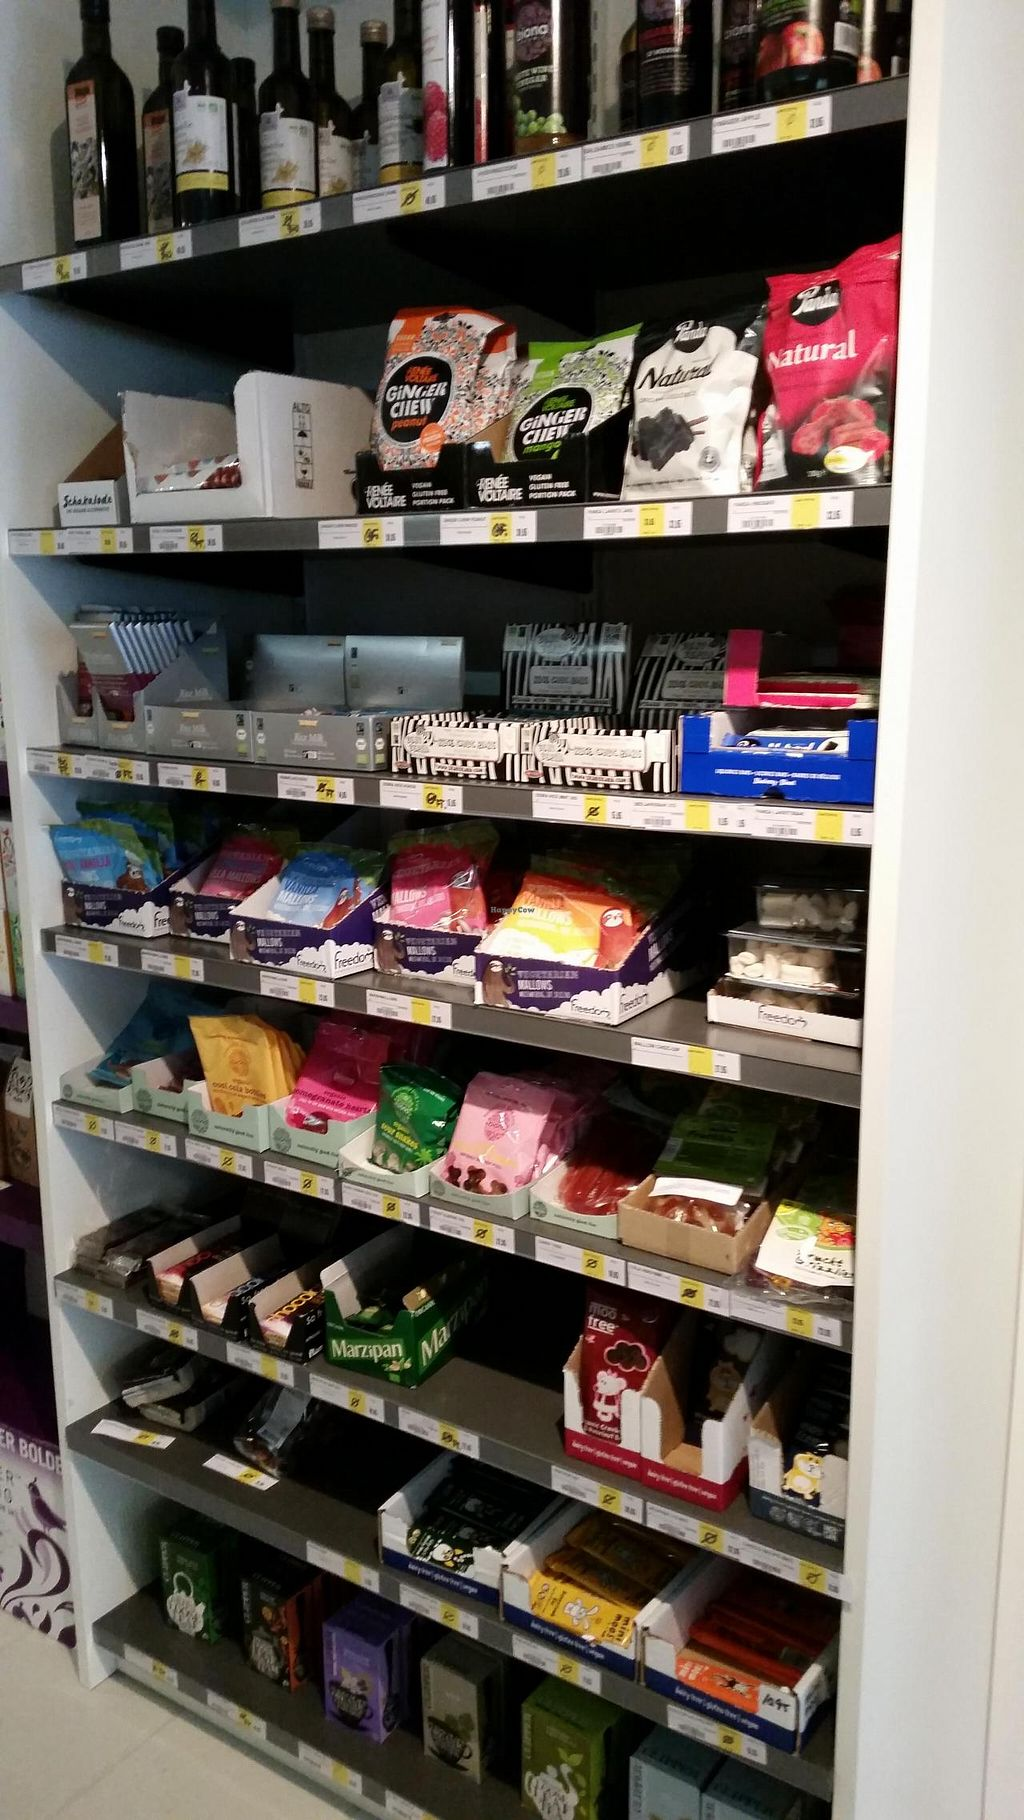 """Photo of CLOSED: Astrid och Aporna - Cph  by <a href=""""/members/profile/konlish"""">konlish</a> <br/>wines sweets chocolates <br/> May 21, 2015  - <a href='/contact/abuse/image/54710/102990'>Report</a>"""